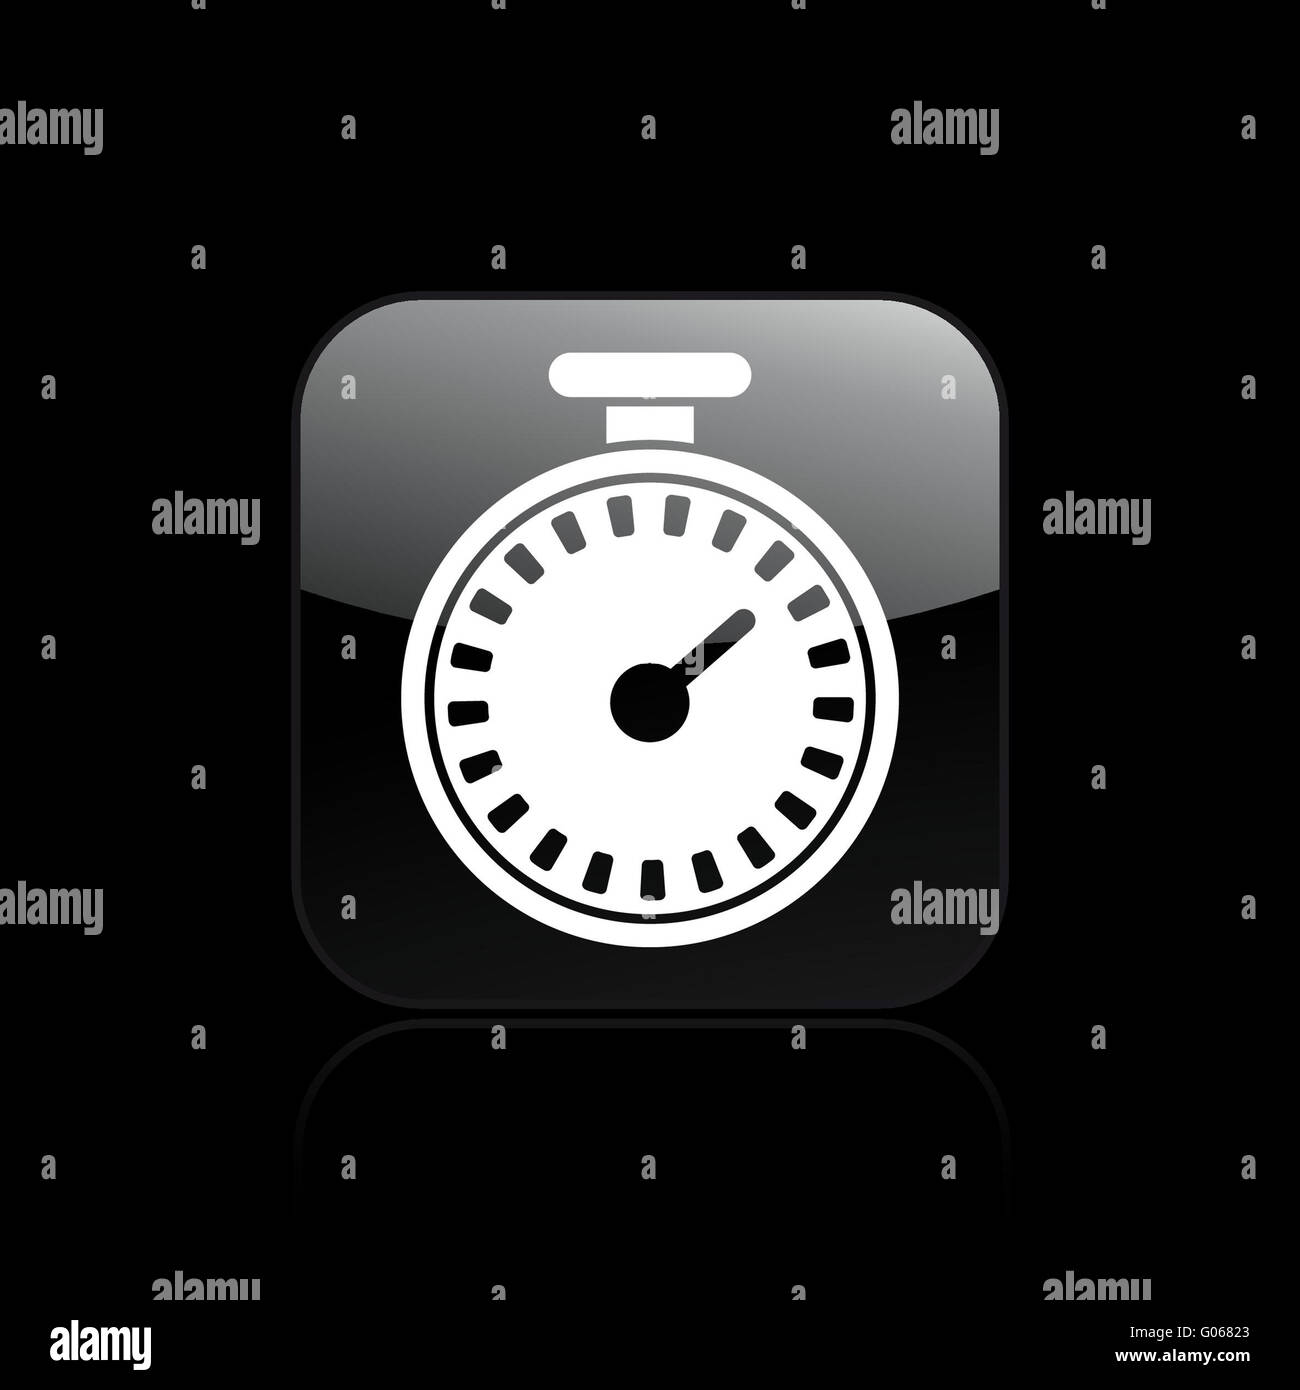 Vector illustration of isolated chronometer icon - Stock Image